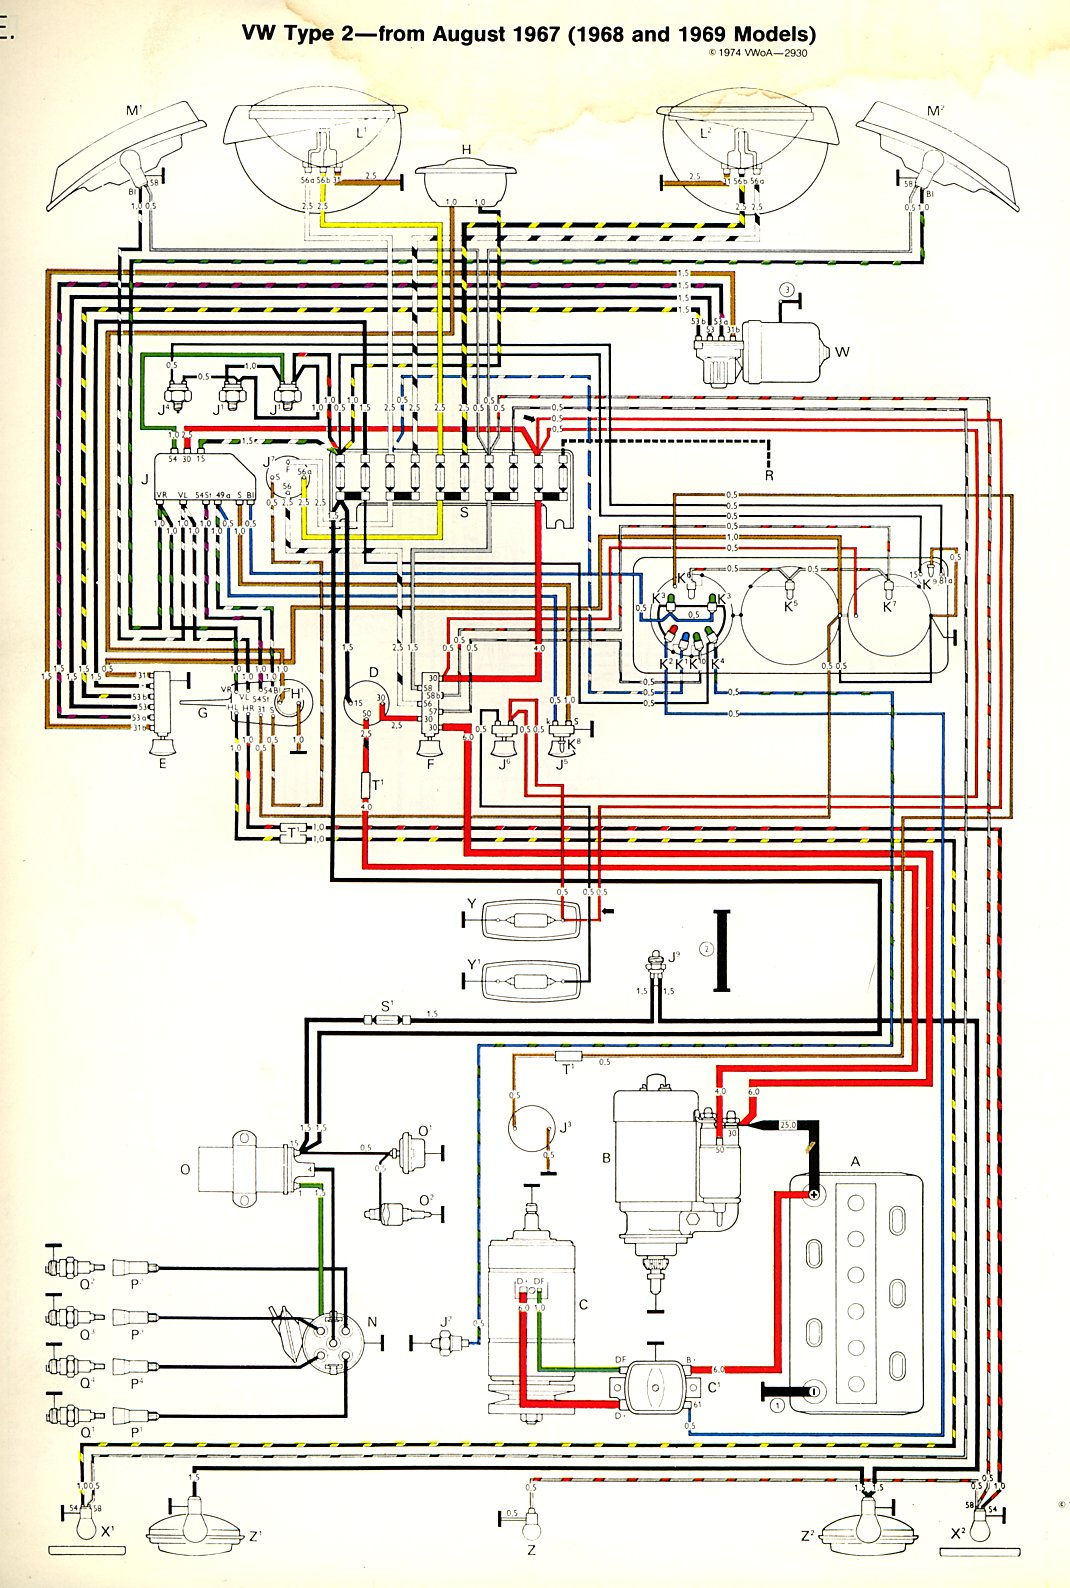 vw wiring diagrams 68 data wiring diagrams \u2022 1962 vw wiring diagram vw bus wiring diagram wiring diagrams schematics rh diventare co 70 vw wiring diagram 64 vw